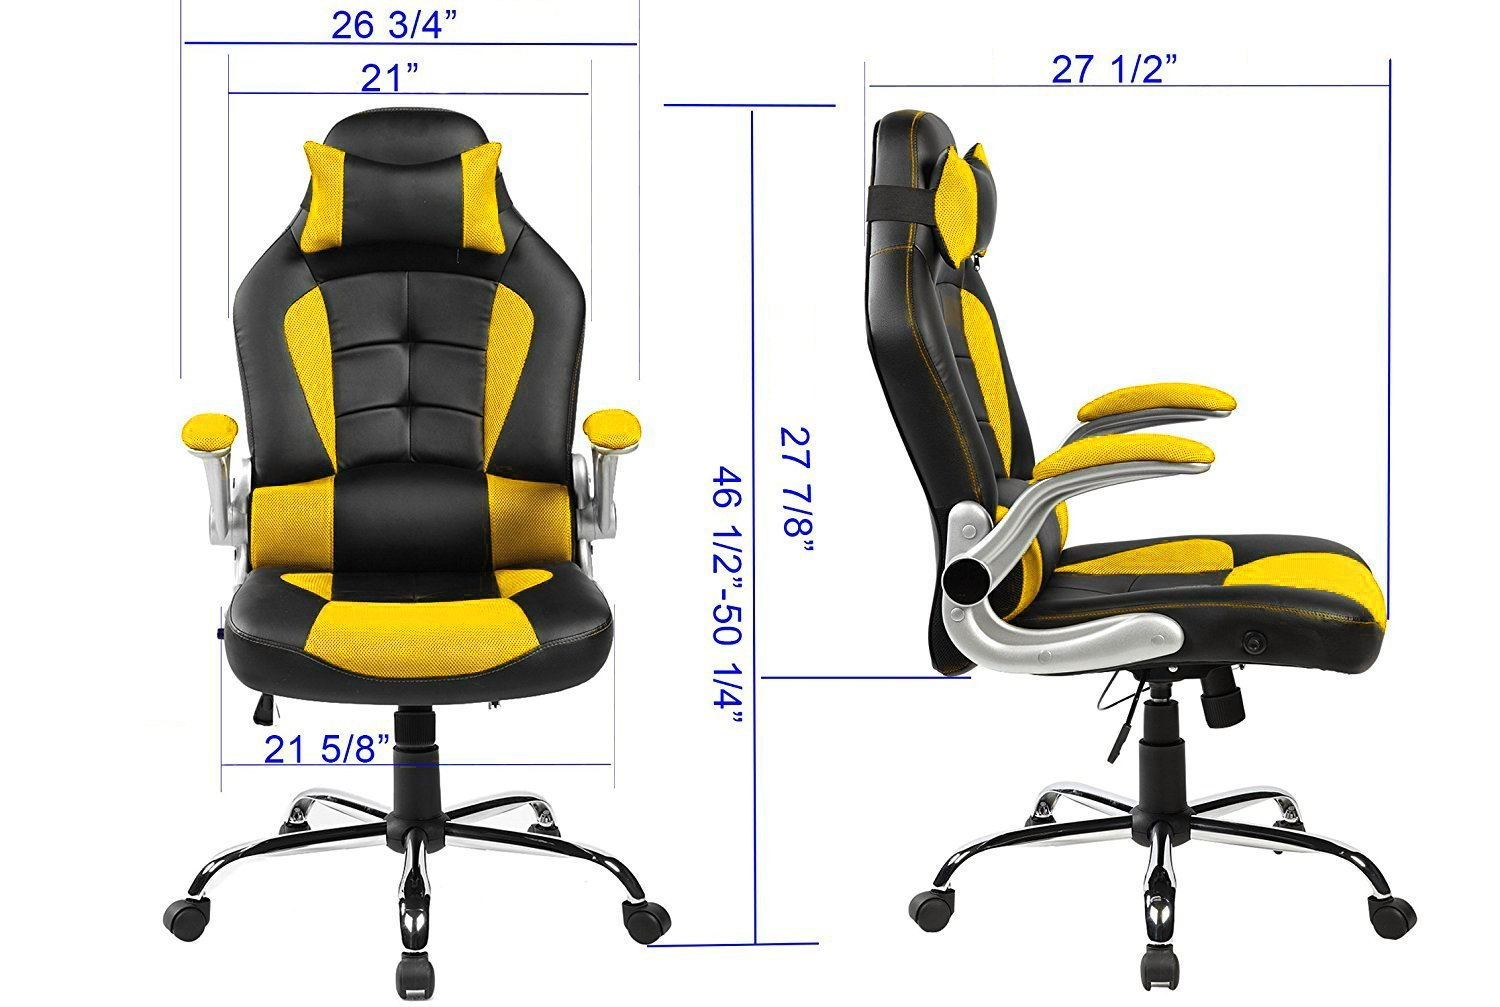 merax ergonomic high back racing style reclining gaming office chair